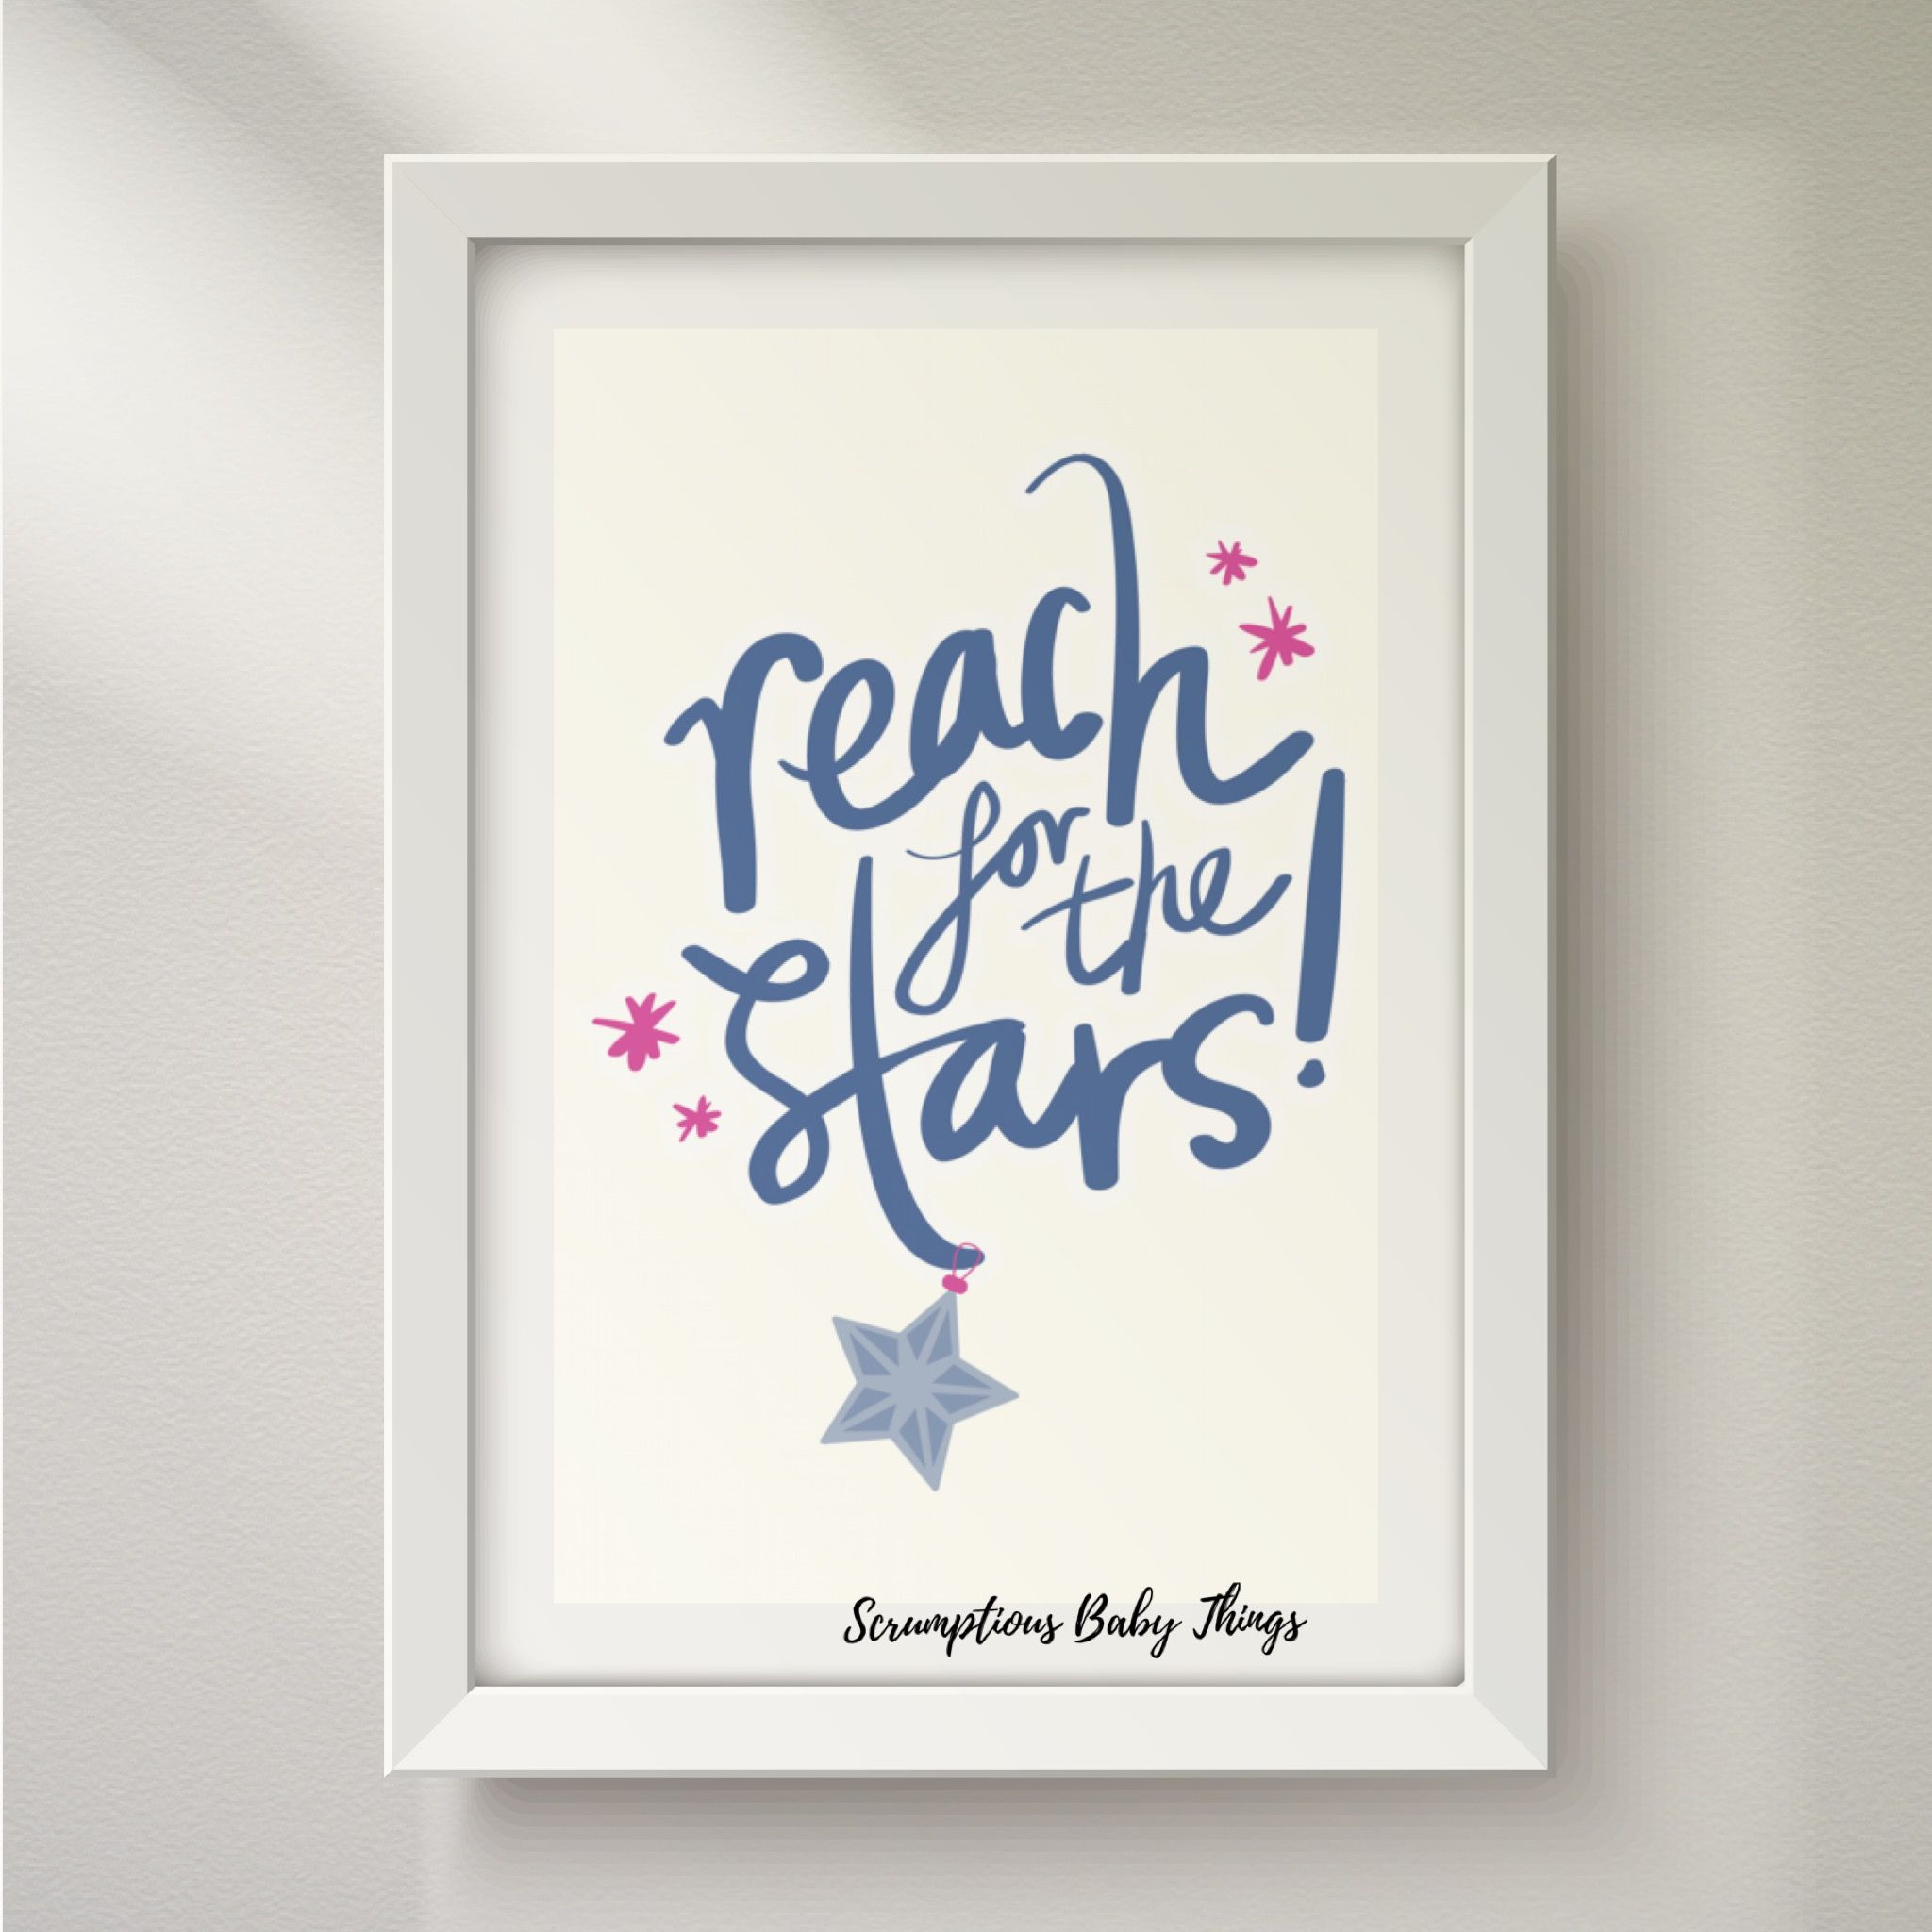 Reach for the stars cute baby things custom wall art kids room